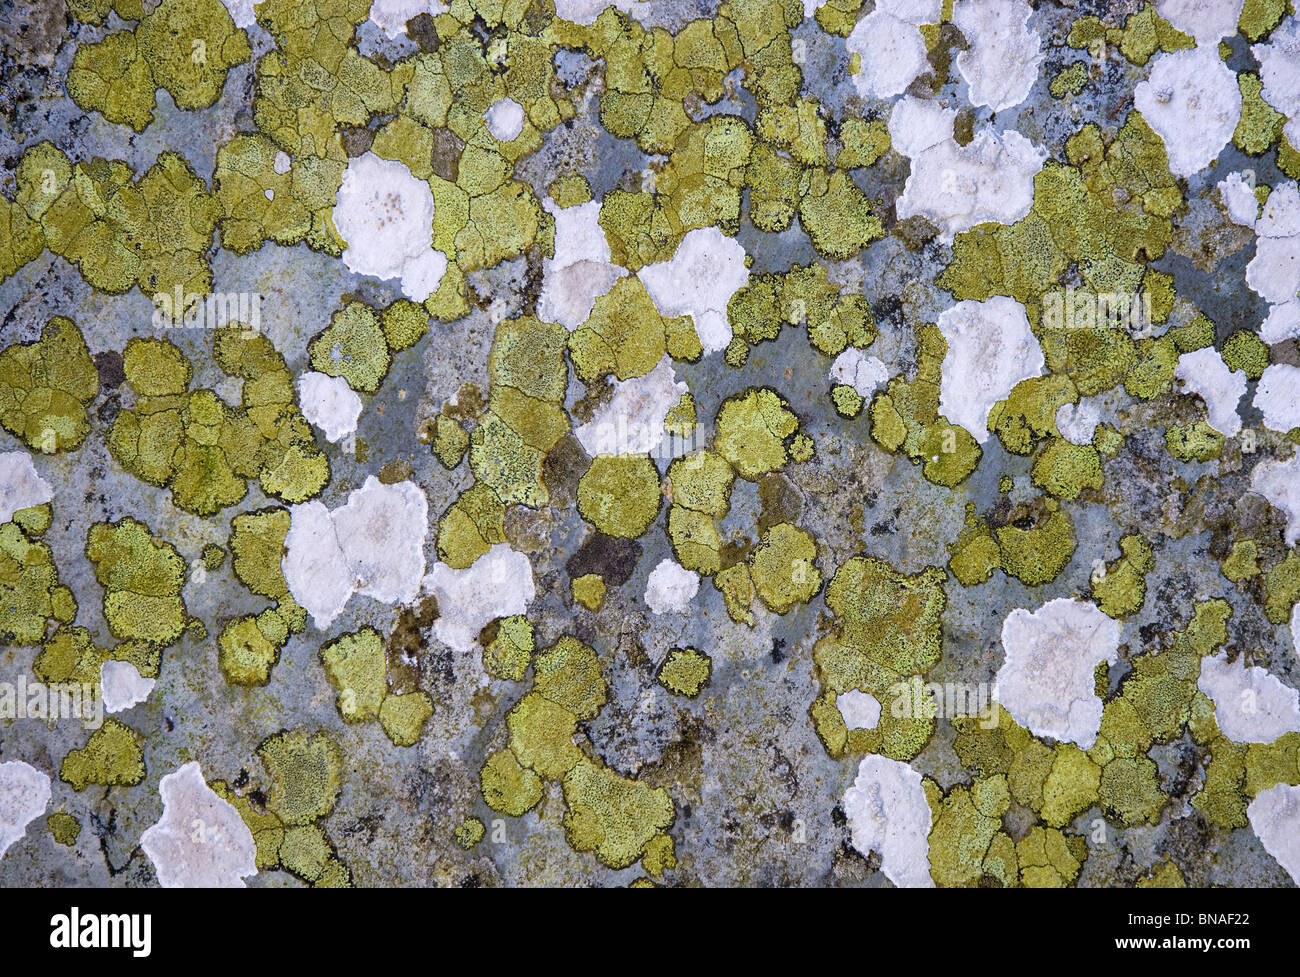 Mosaic of green and white crustose lichens on a slate gravestone in Cornwall Curnow - Stock Image